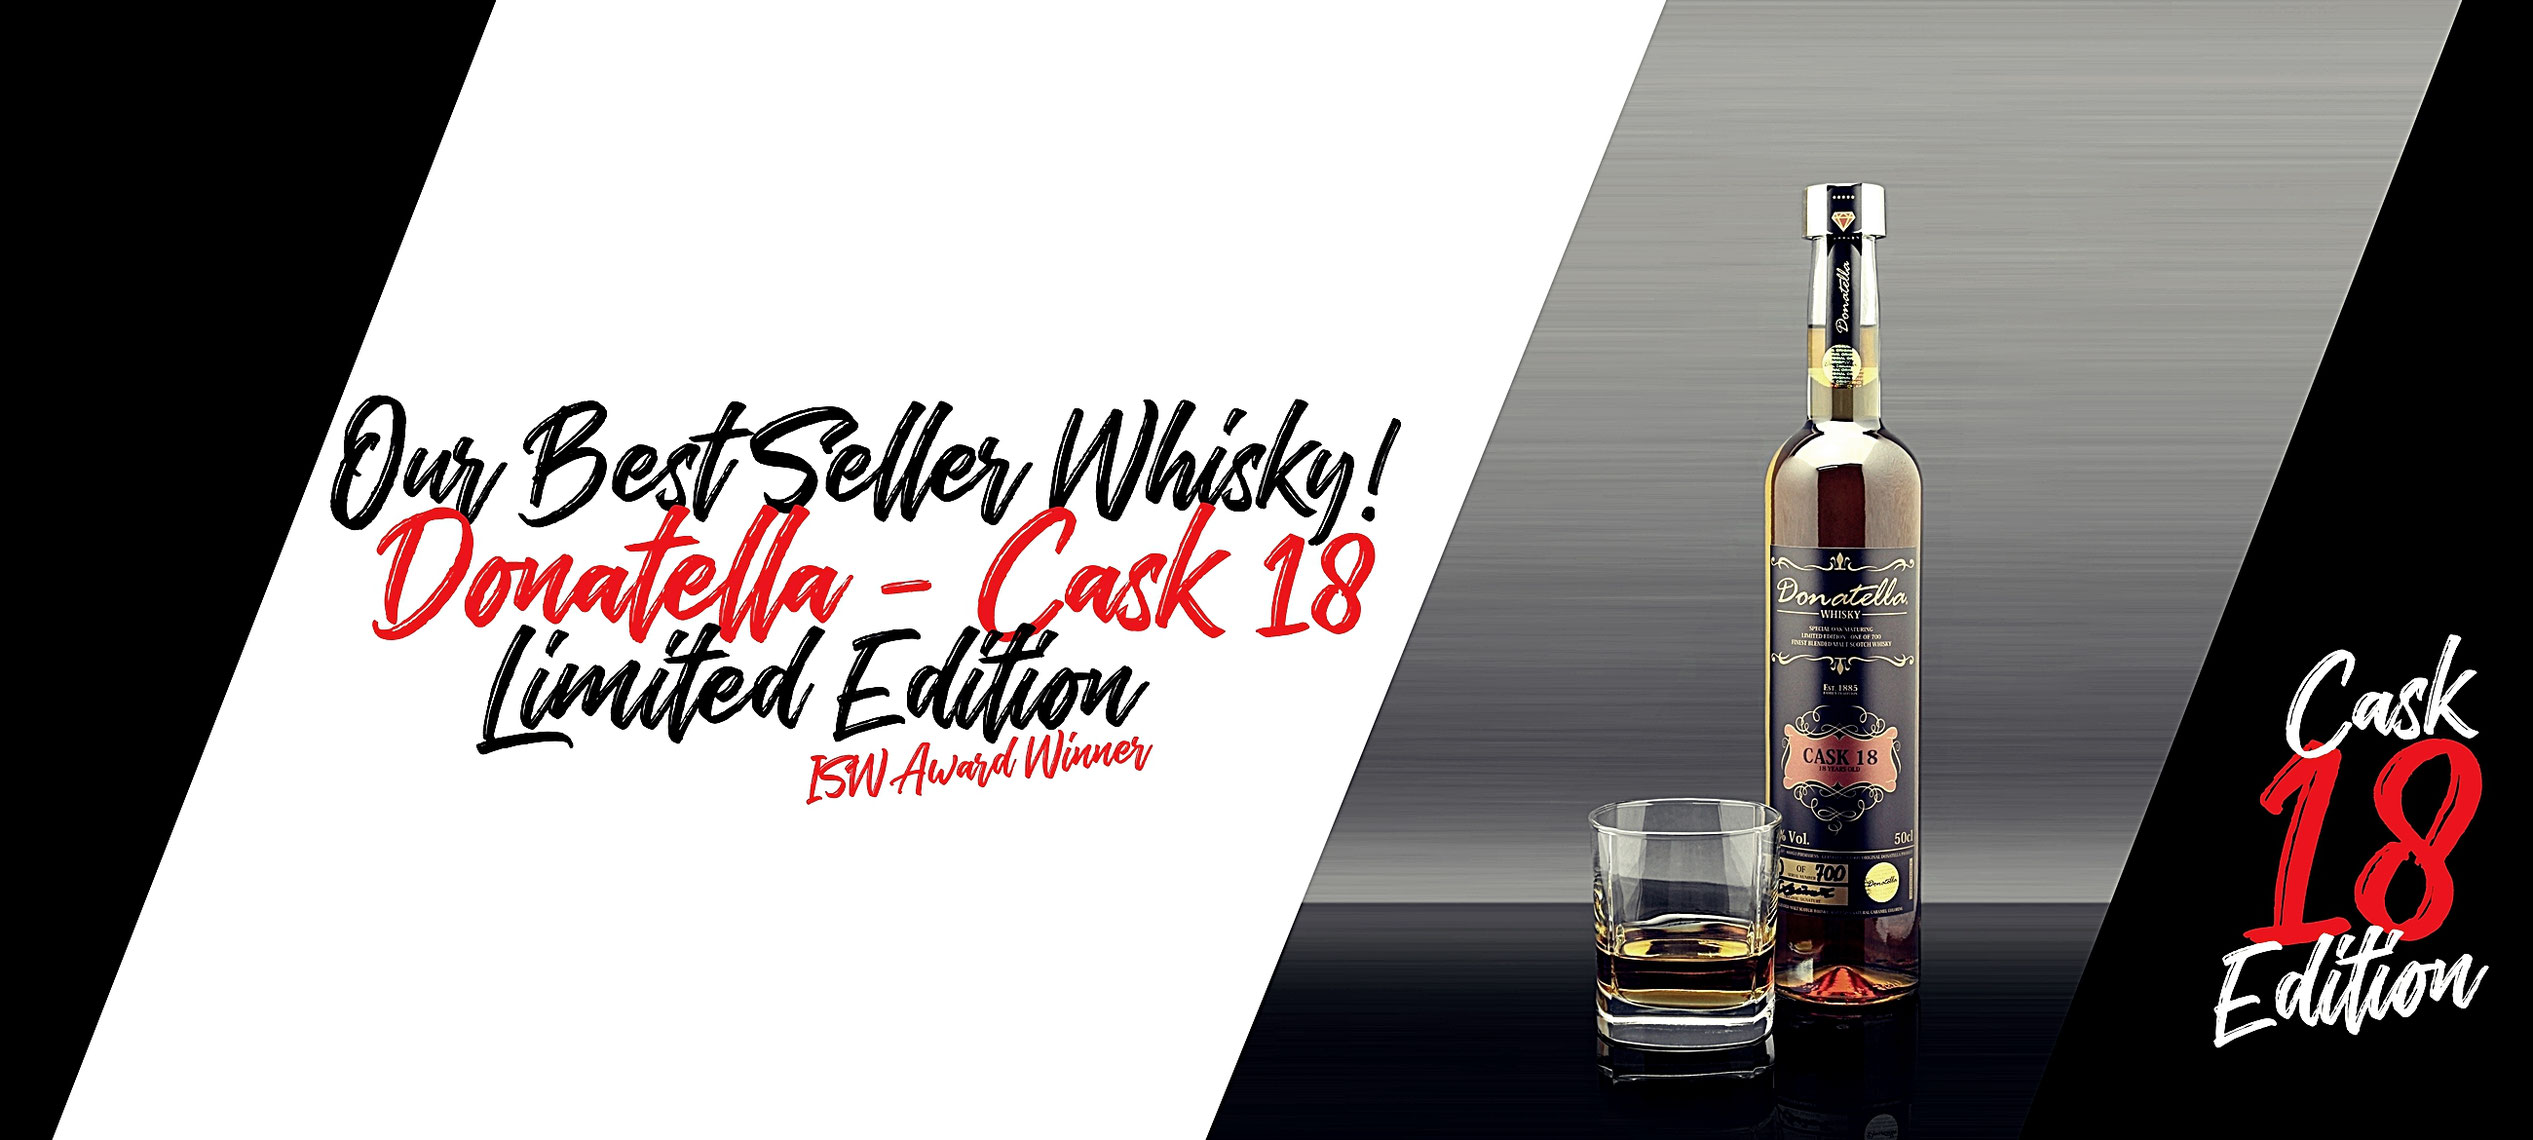 Donatella Luxury Scotch Whisky - Our Best Seller - The Cask 18 Edition